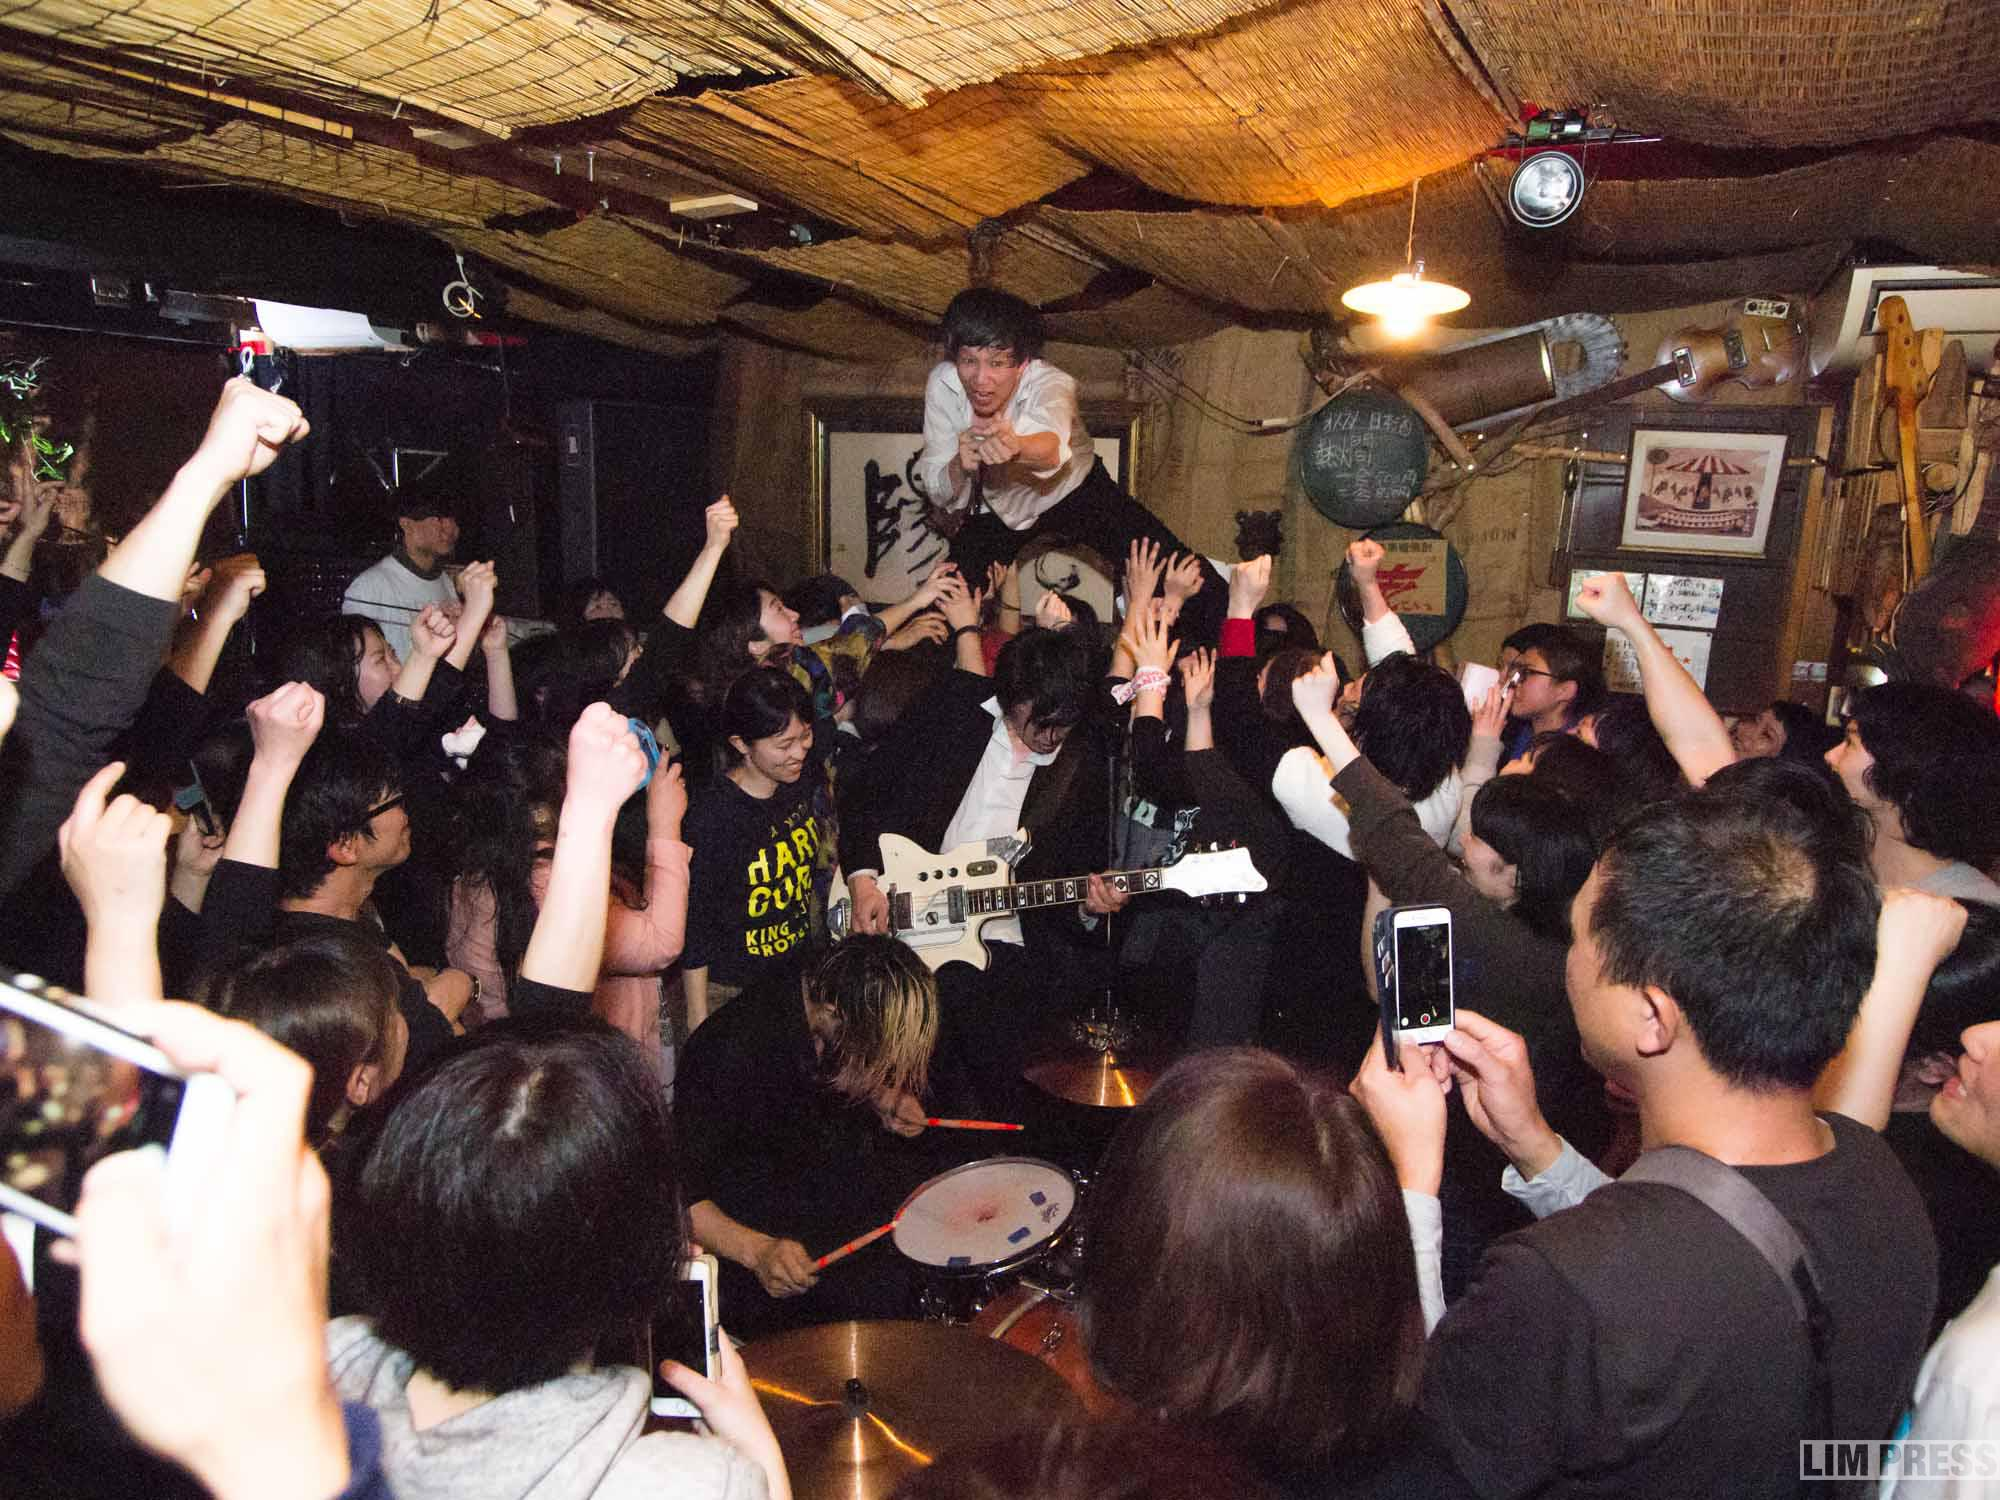 KING BROTHERS   京都 西院ネガポジ   2019.02.10